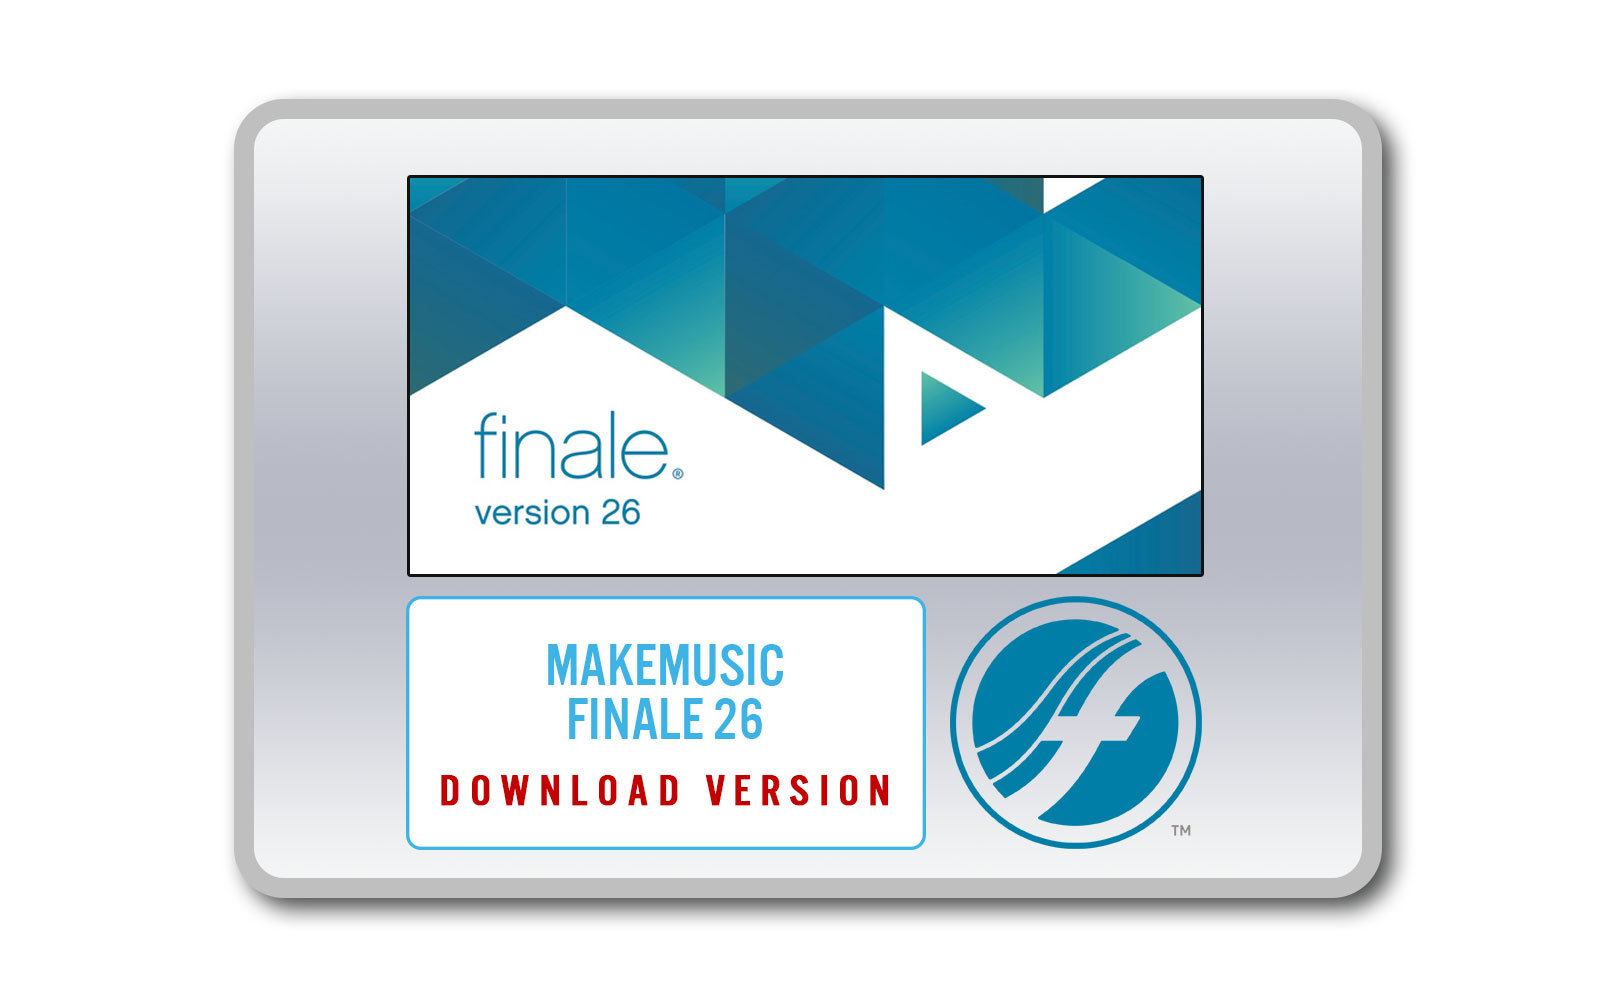 makemusic-finale-26-update-von-finale-2014-oder-a-lter-download-